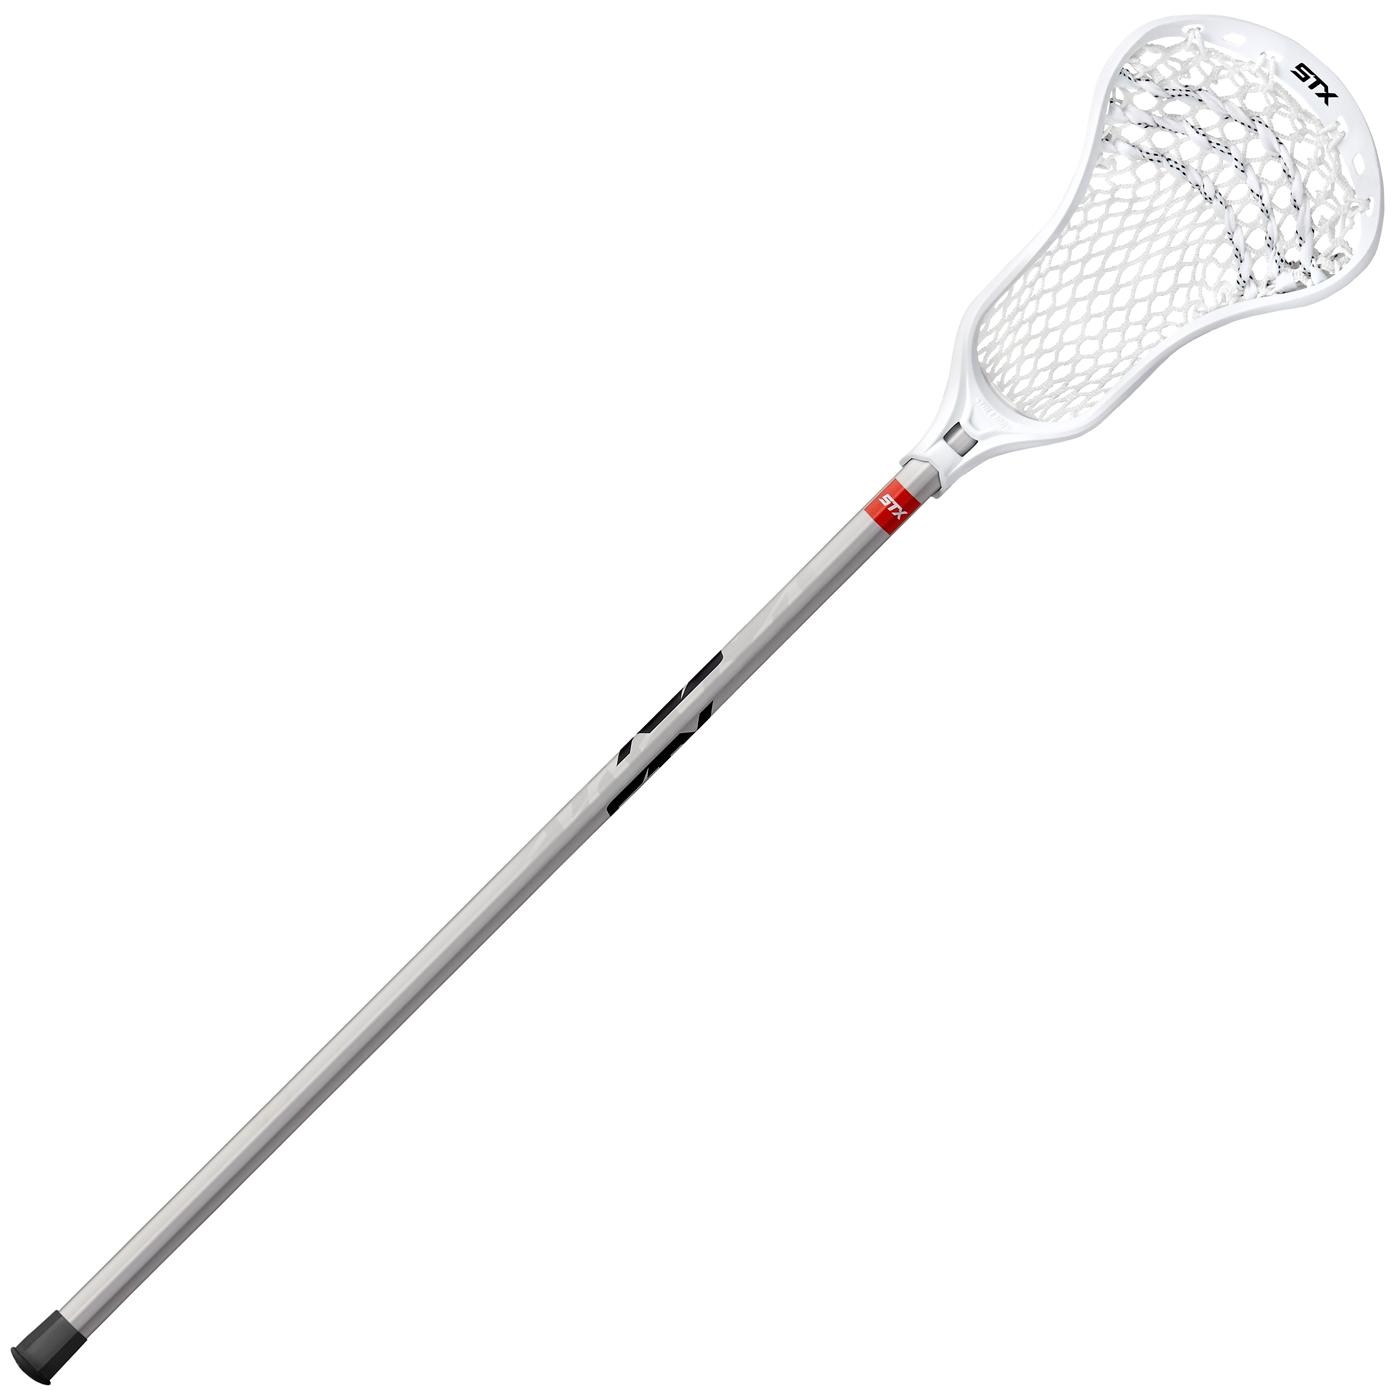 1400x1395 Lacrosse Sticks, Complete Lax Sticks For Beginner'S